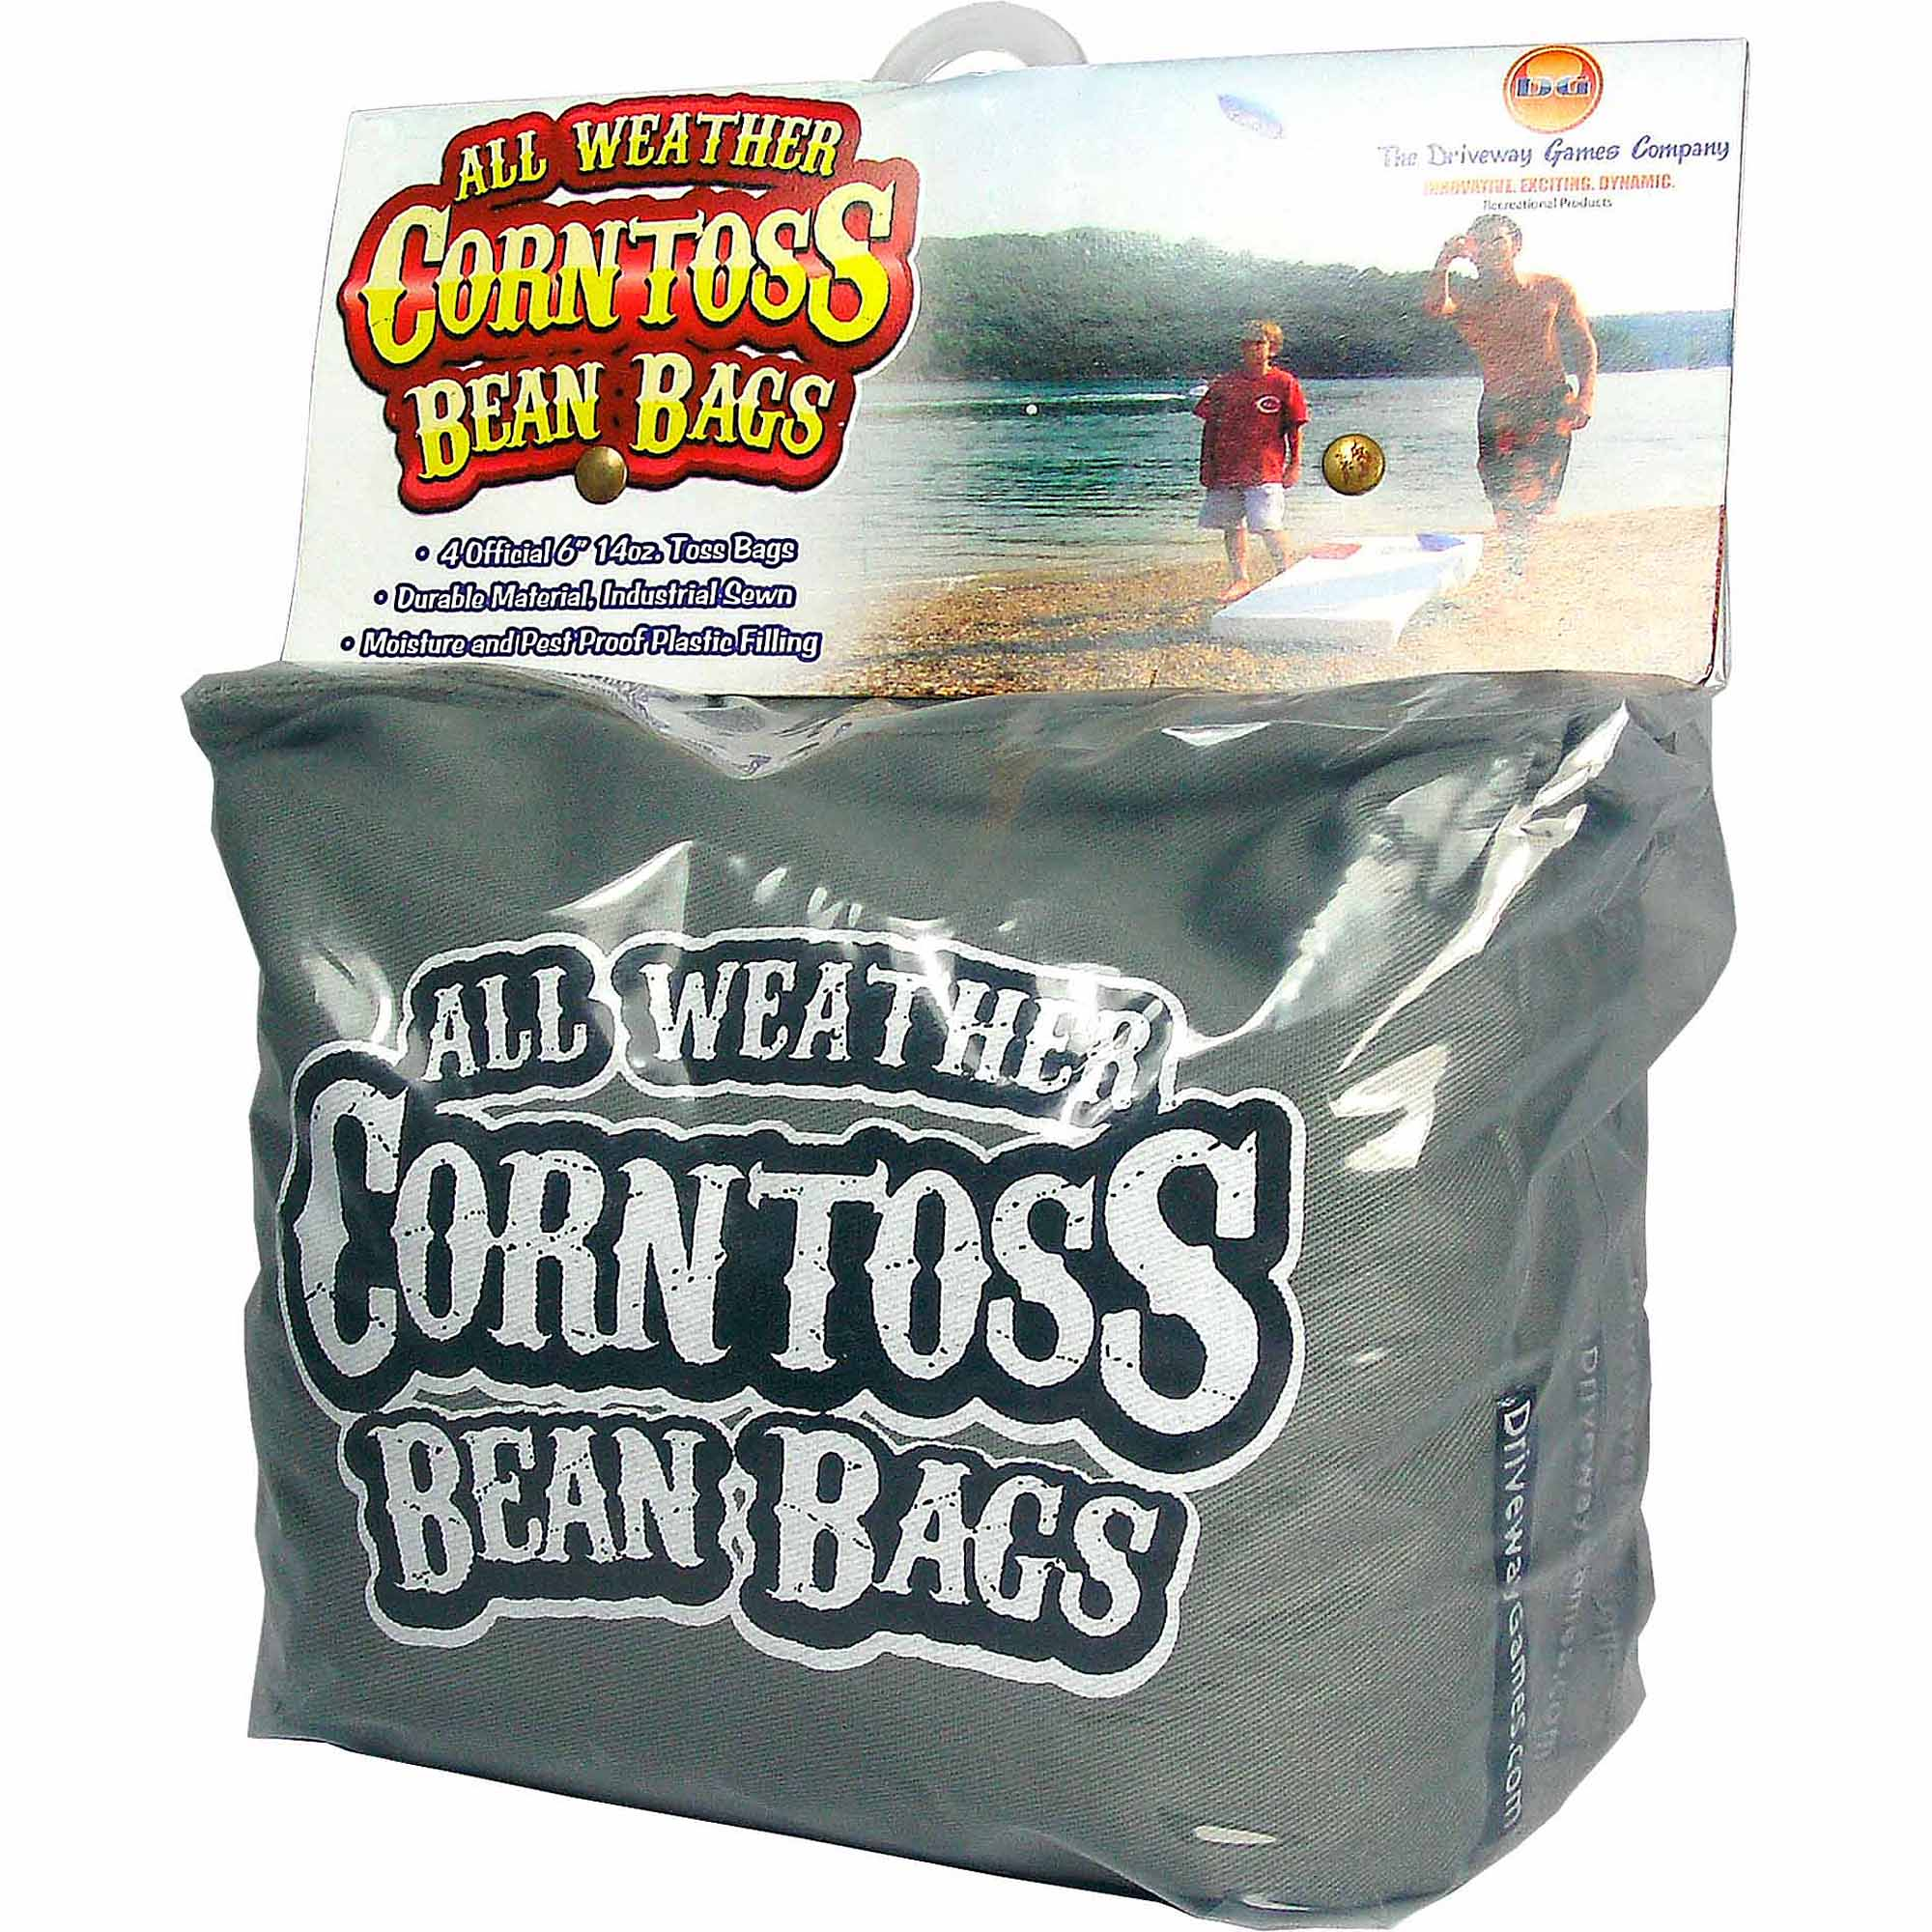 Driveway Games All Weather Corntoss Bean Bags, Grey